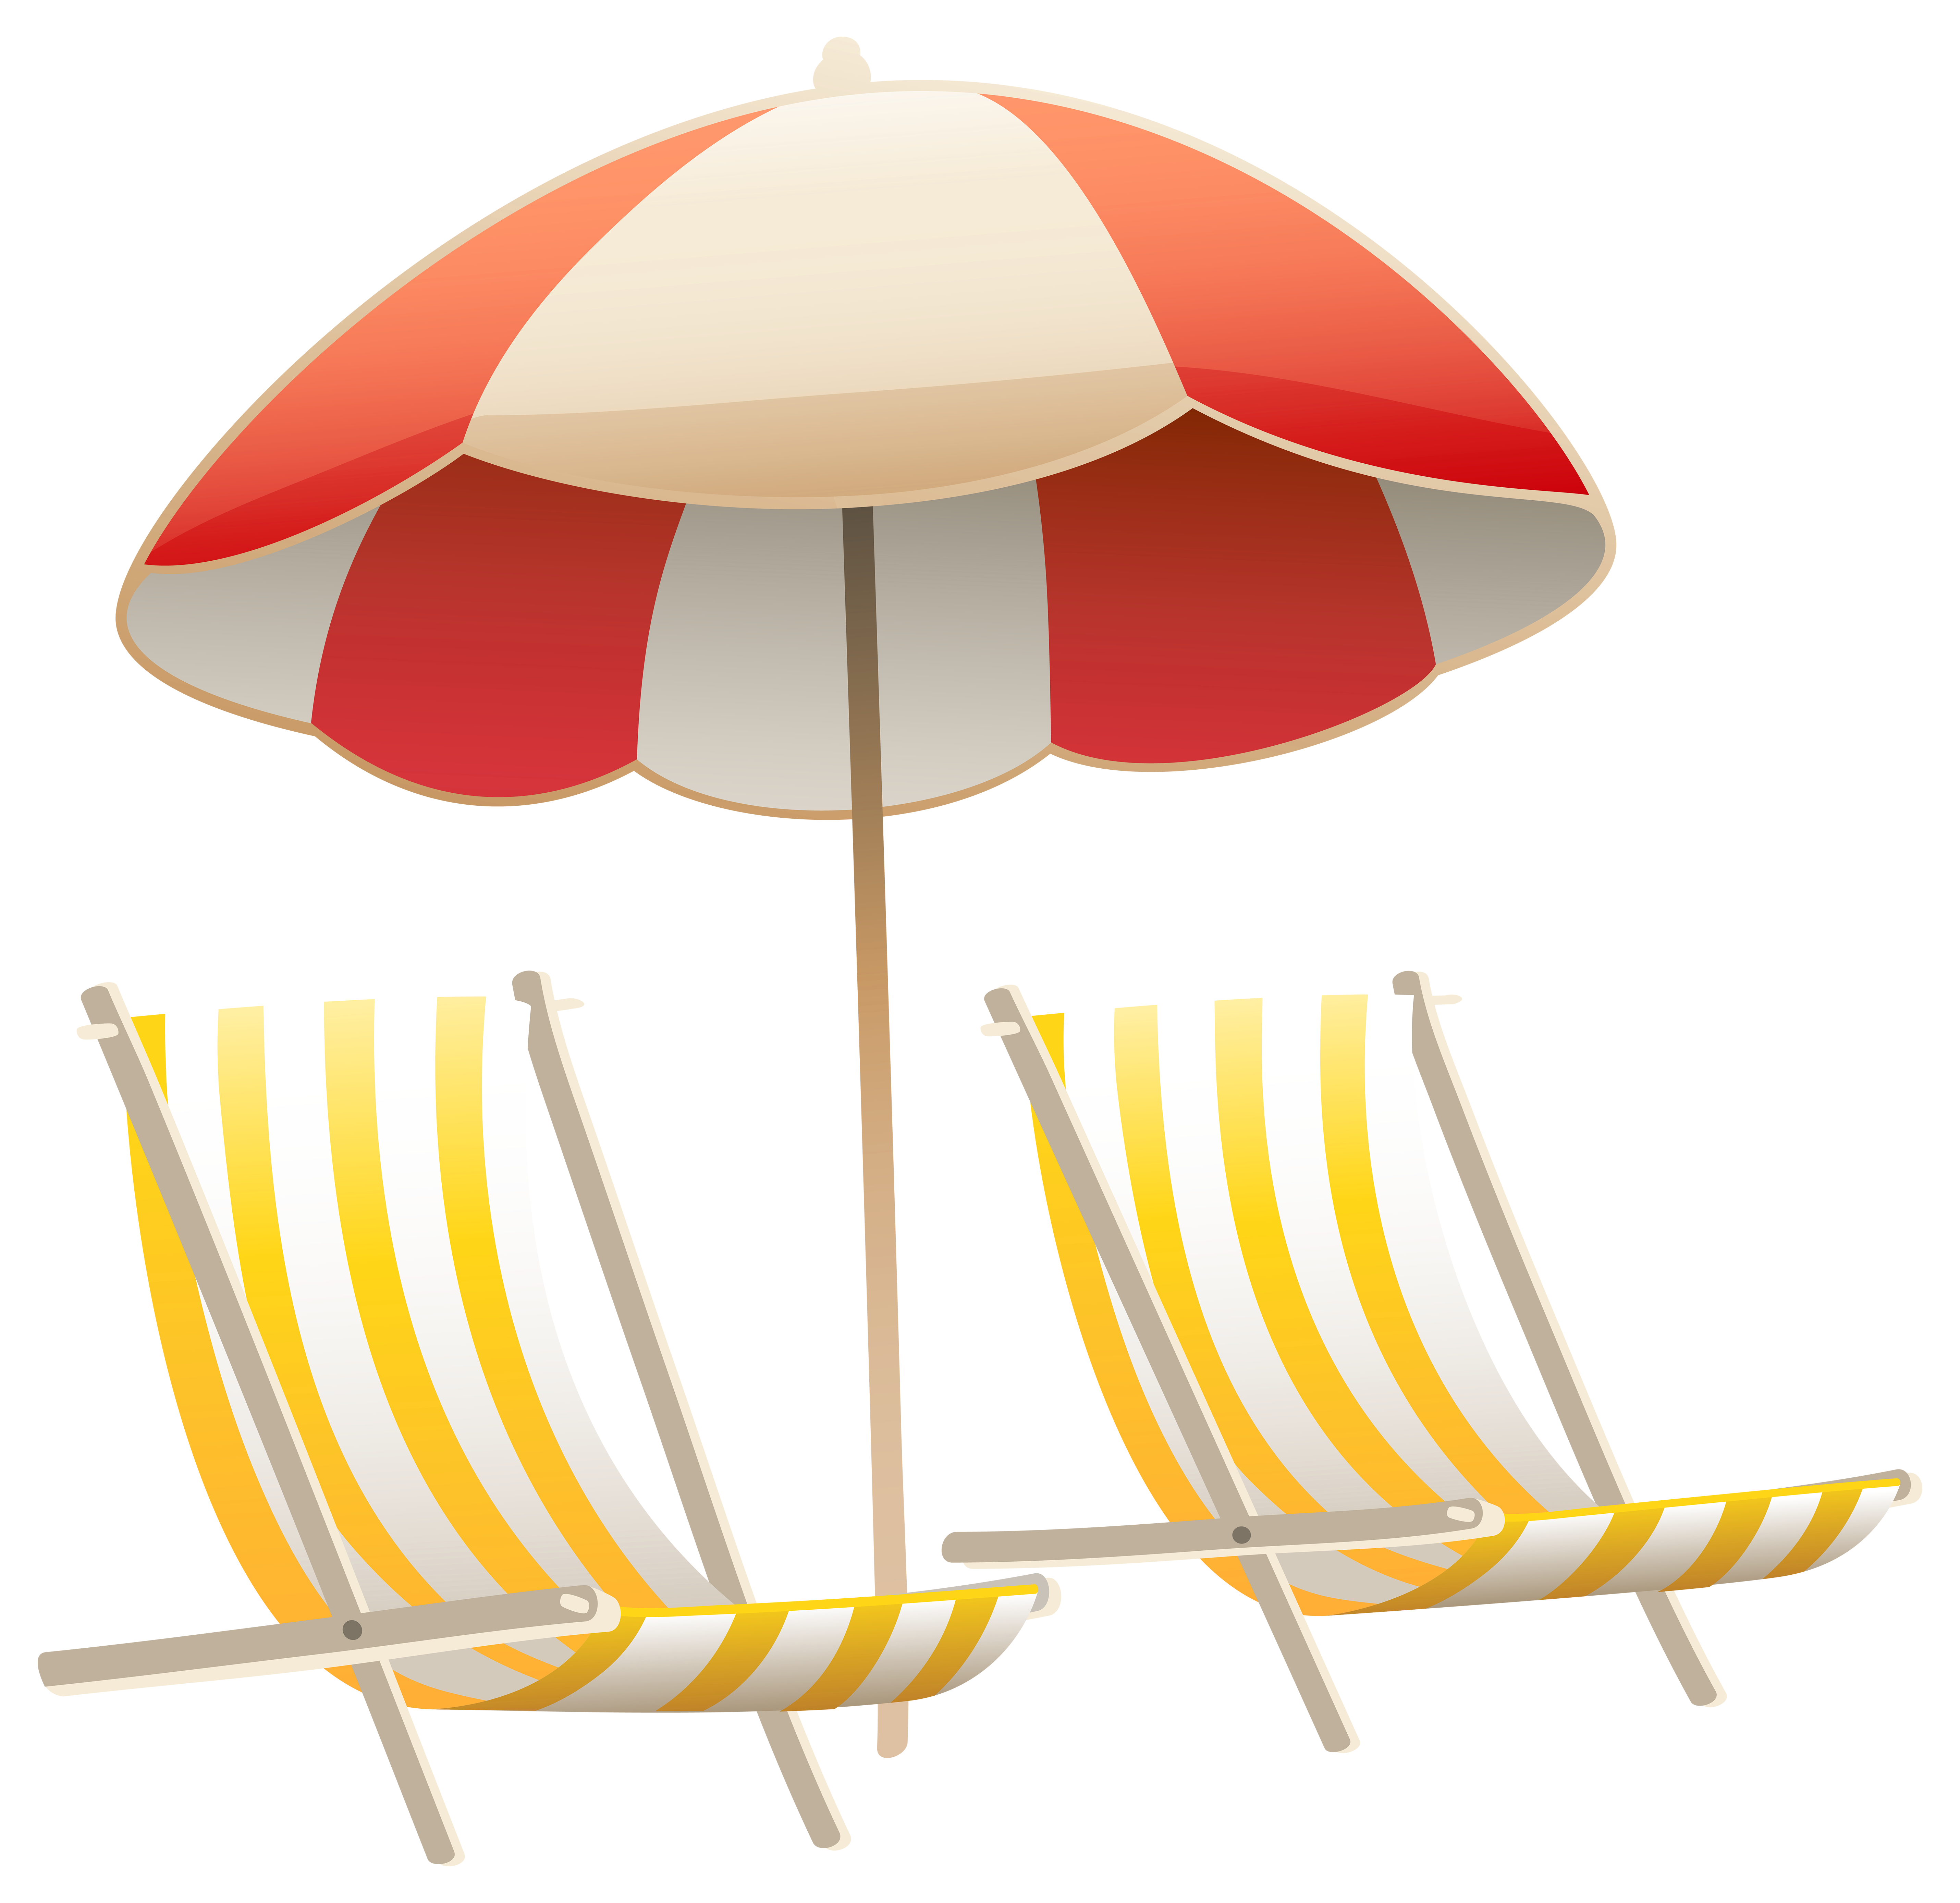 Vacation clipart beach chair Clipart and PNG Yopriceville Image